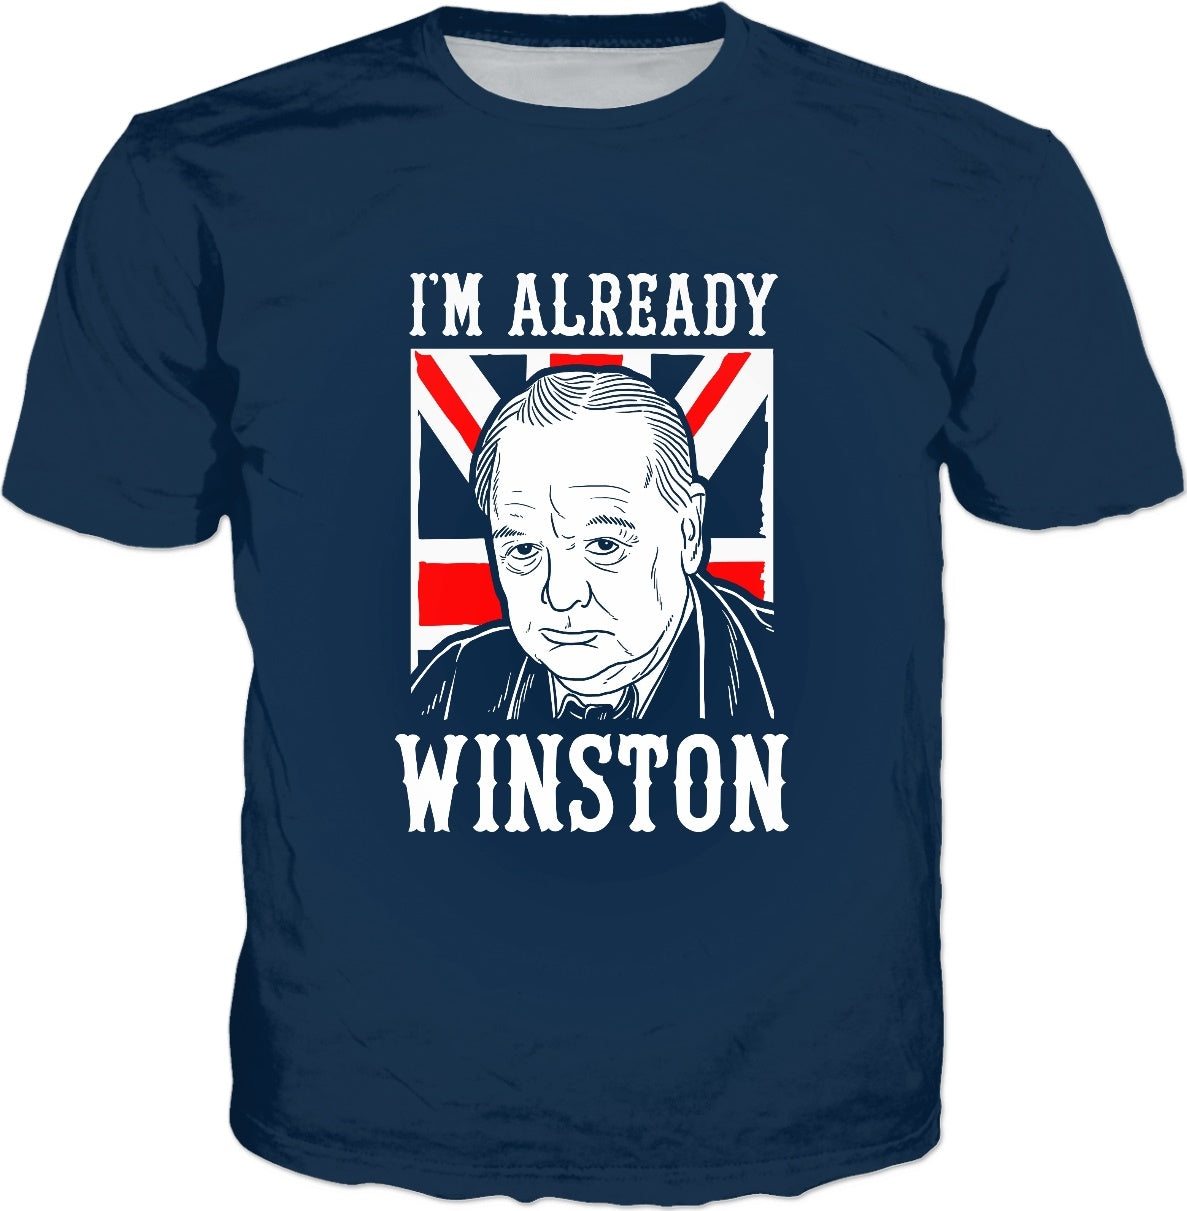 I'm Already Winston T-Shirt -